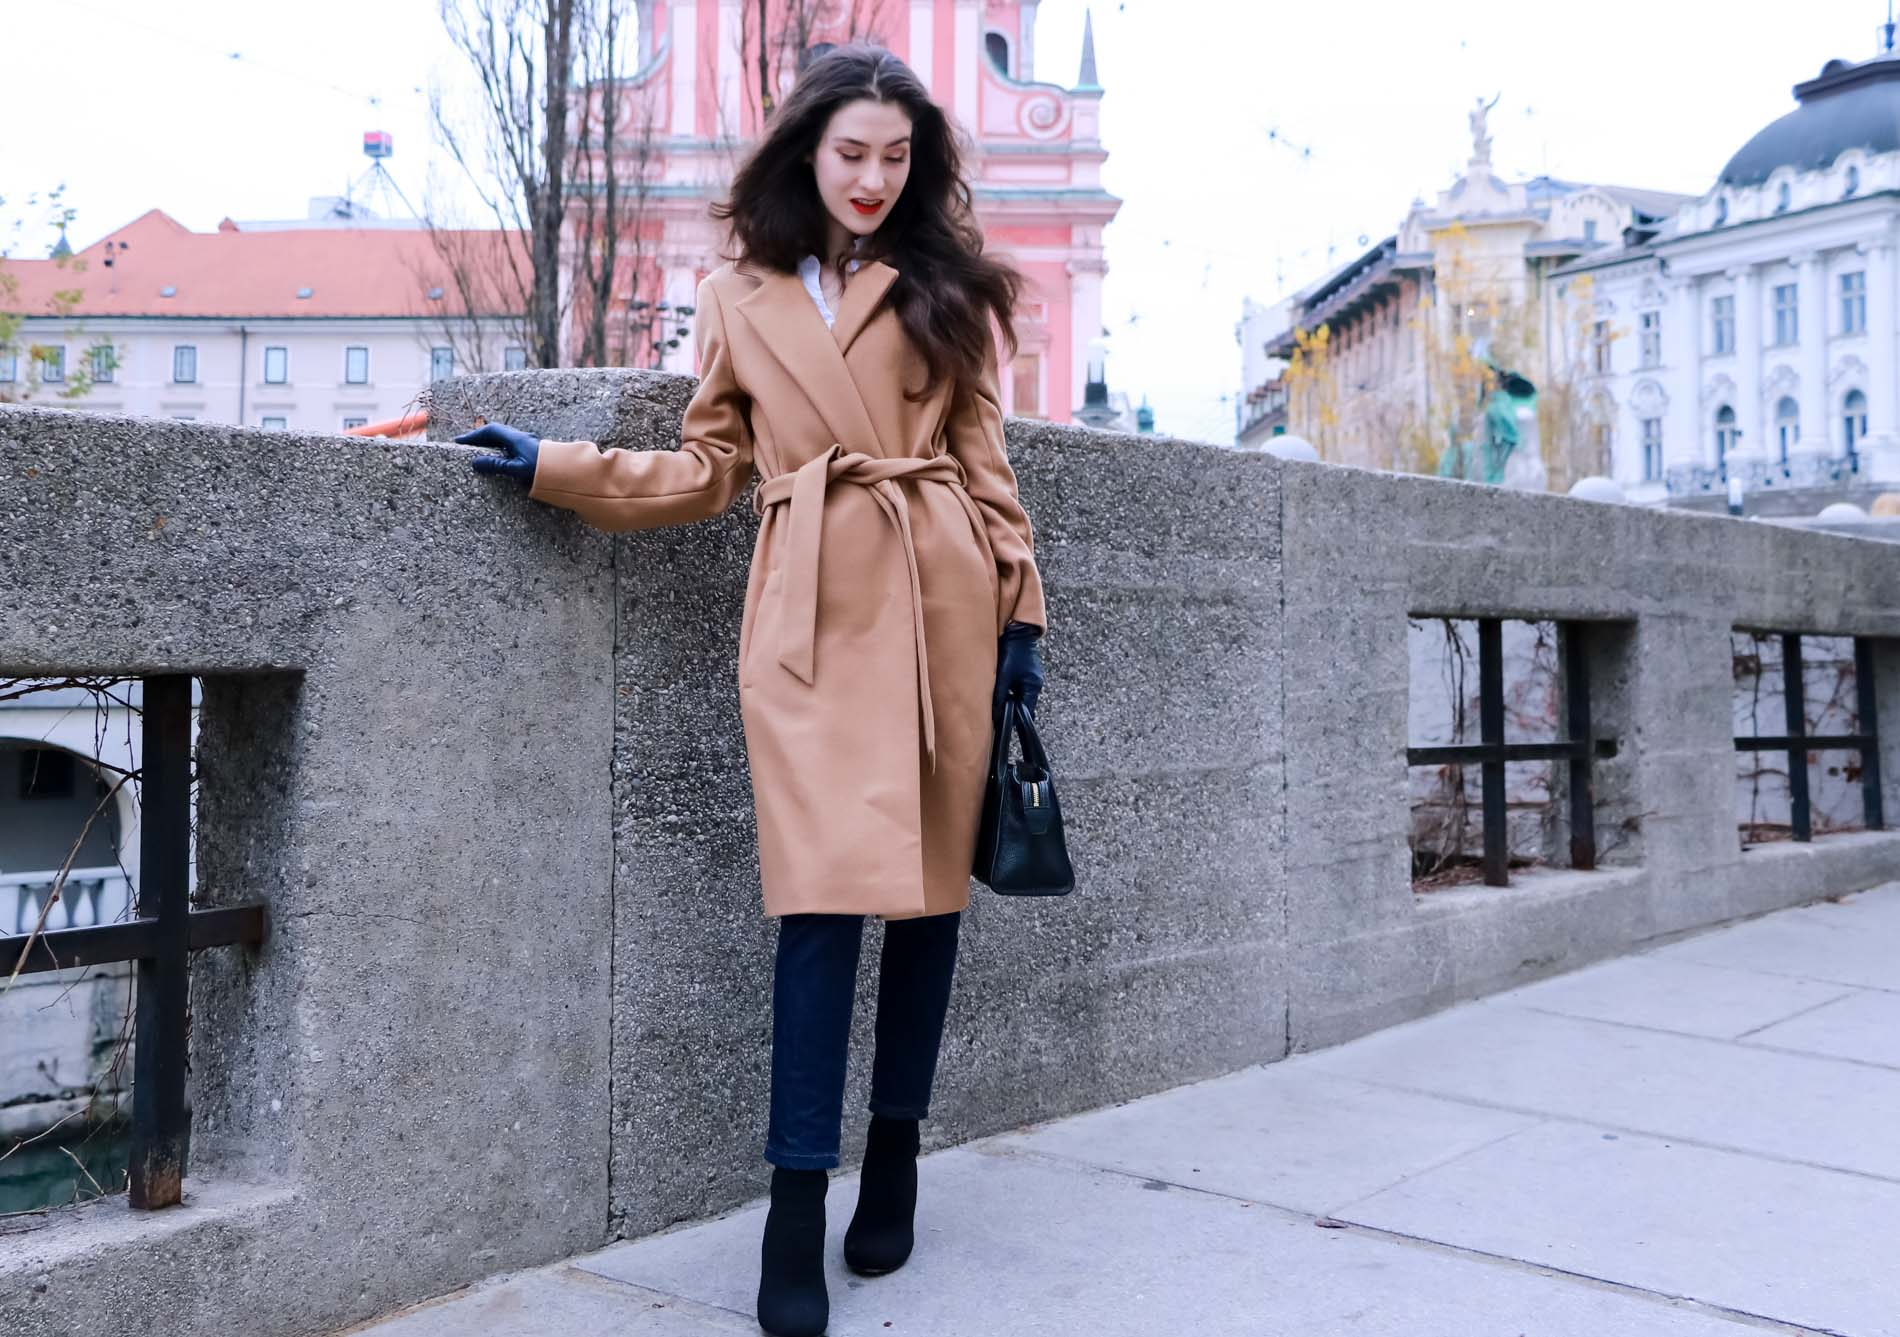 Fashion Blogger Veronika Lipar of Brunette from Wall Street wearing camel wrap coat from Escada, tapered dark denim jeans from A.P.C., small black top handle bag, blue leather gloves and red lipstick, business casual outfit for work, while standing on the street in Ljubljana